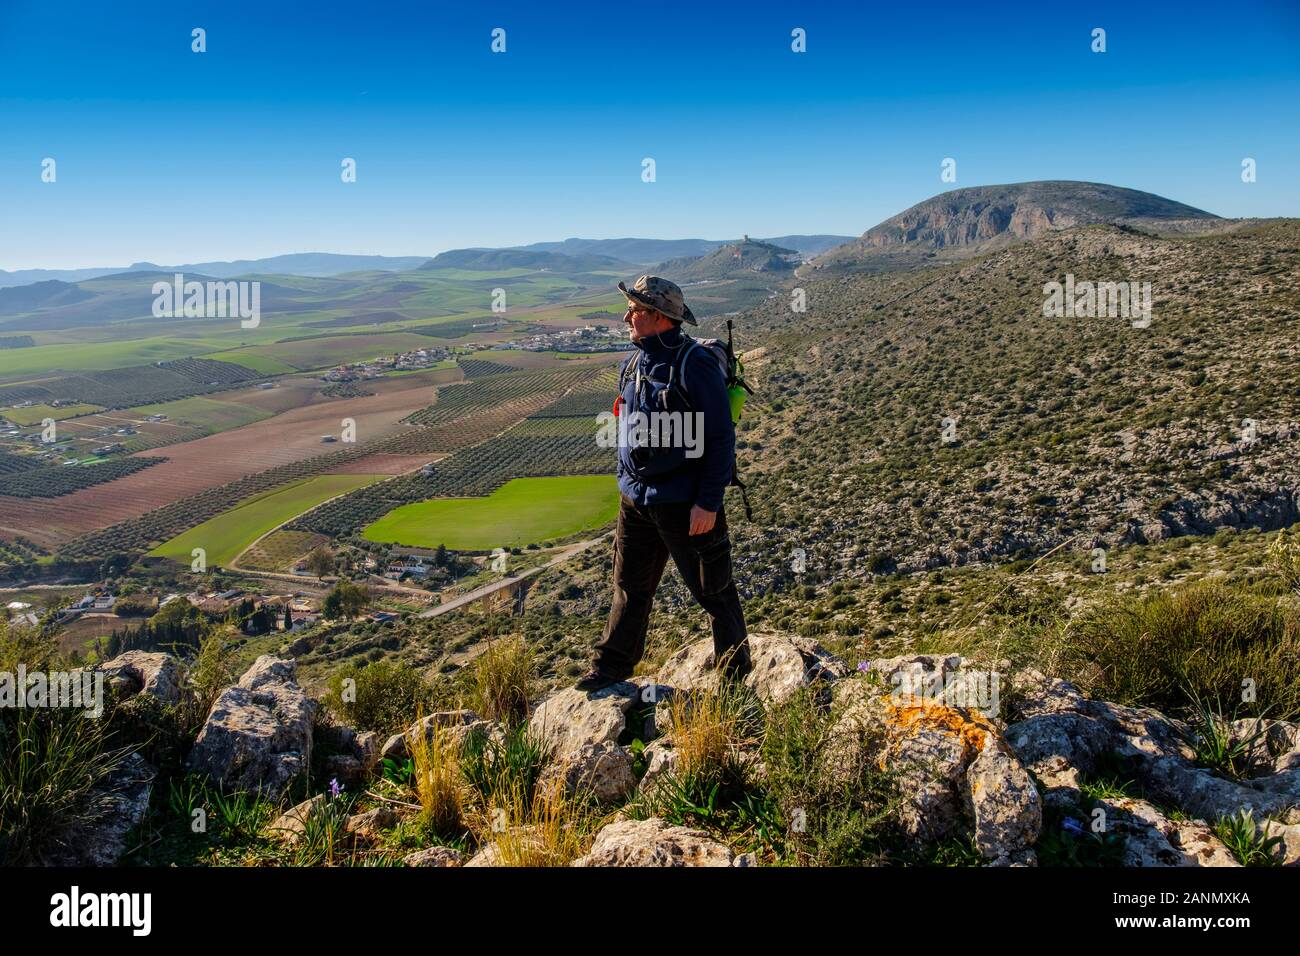 Hiker doing a nature walk. Nature environment natural park of Ardales. Malaga province, southern Andalusia. Spain Europe Stock Photo